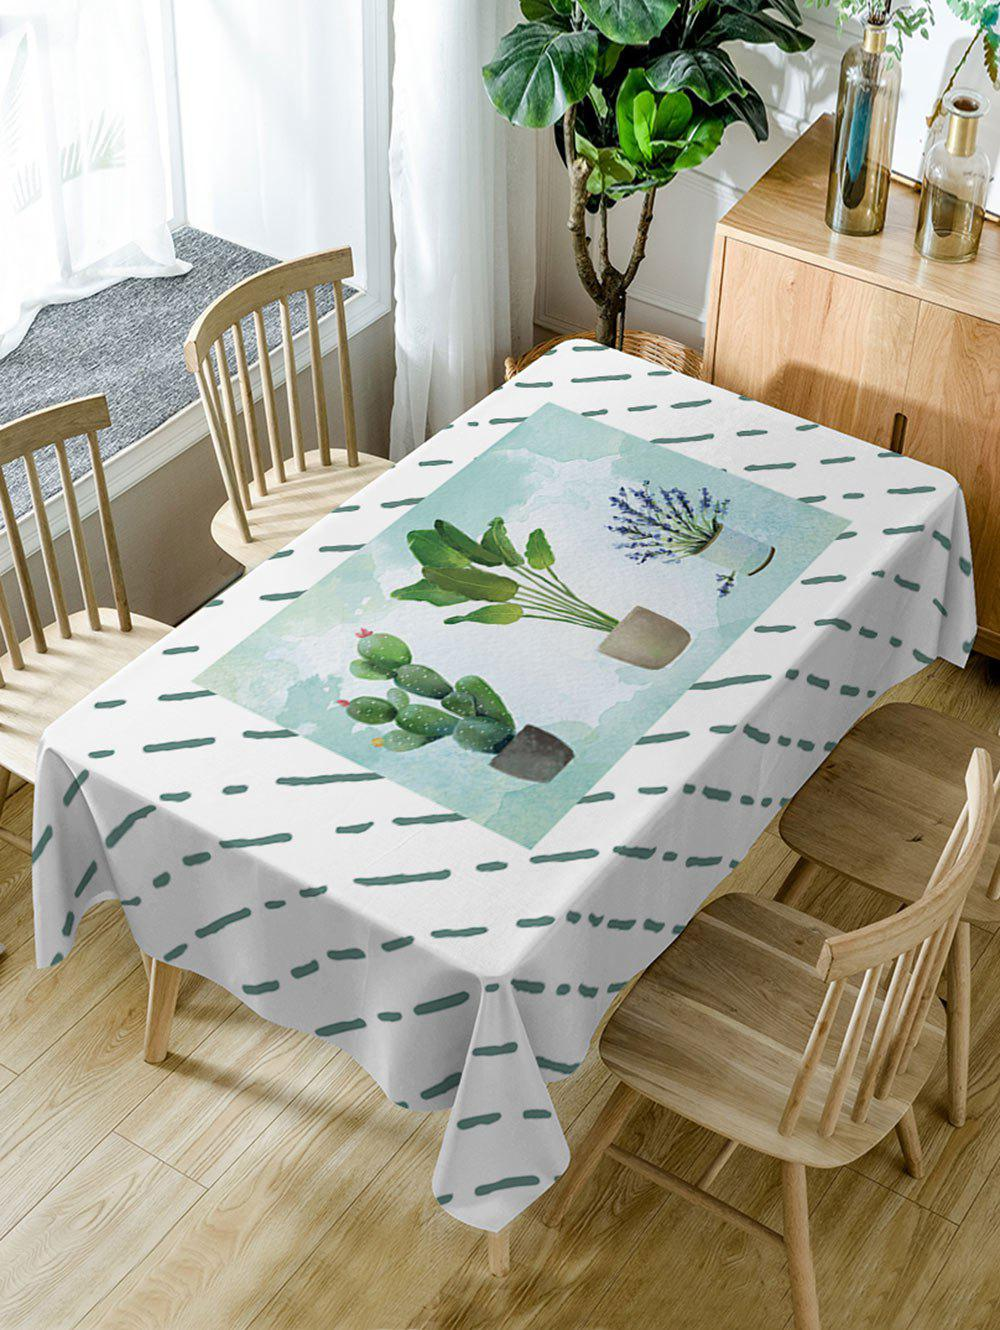 Affordable Waterproof Cacti Flowerpot Print Table Cloth